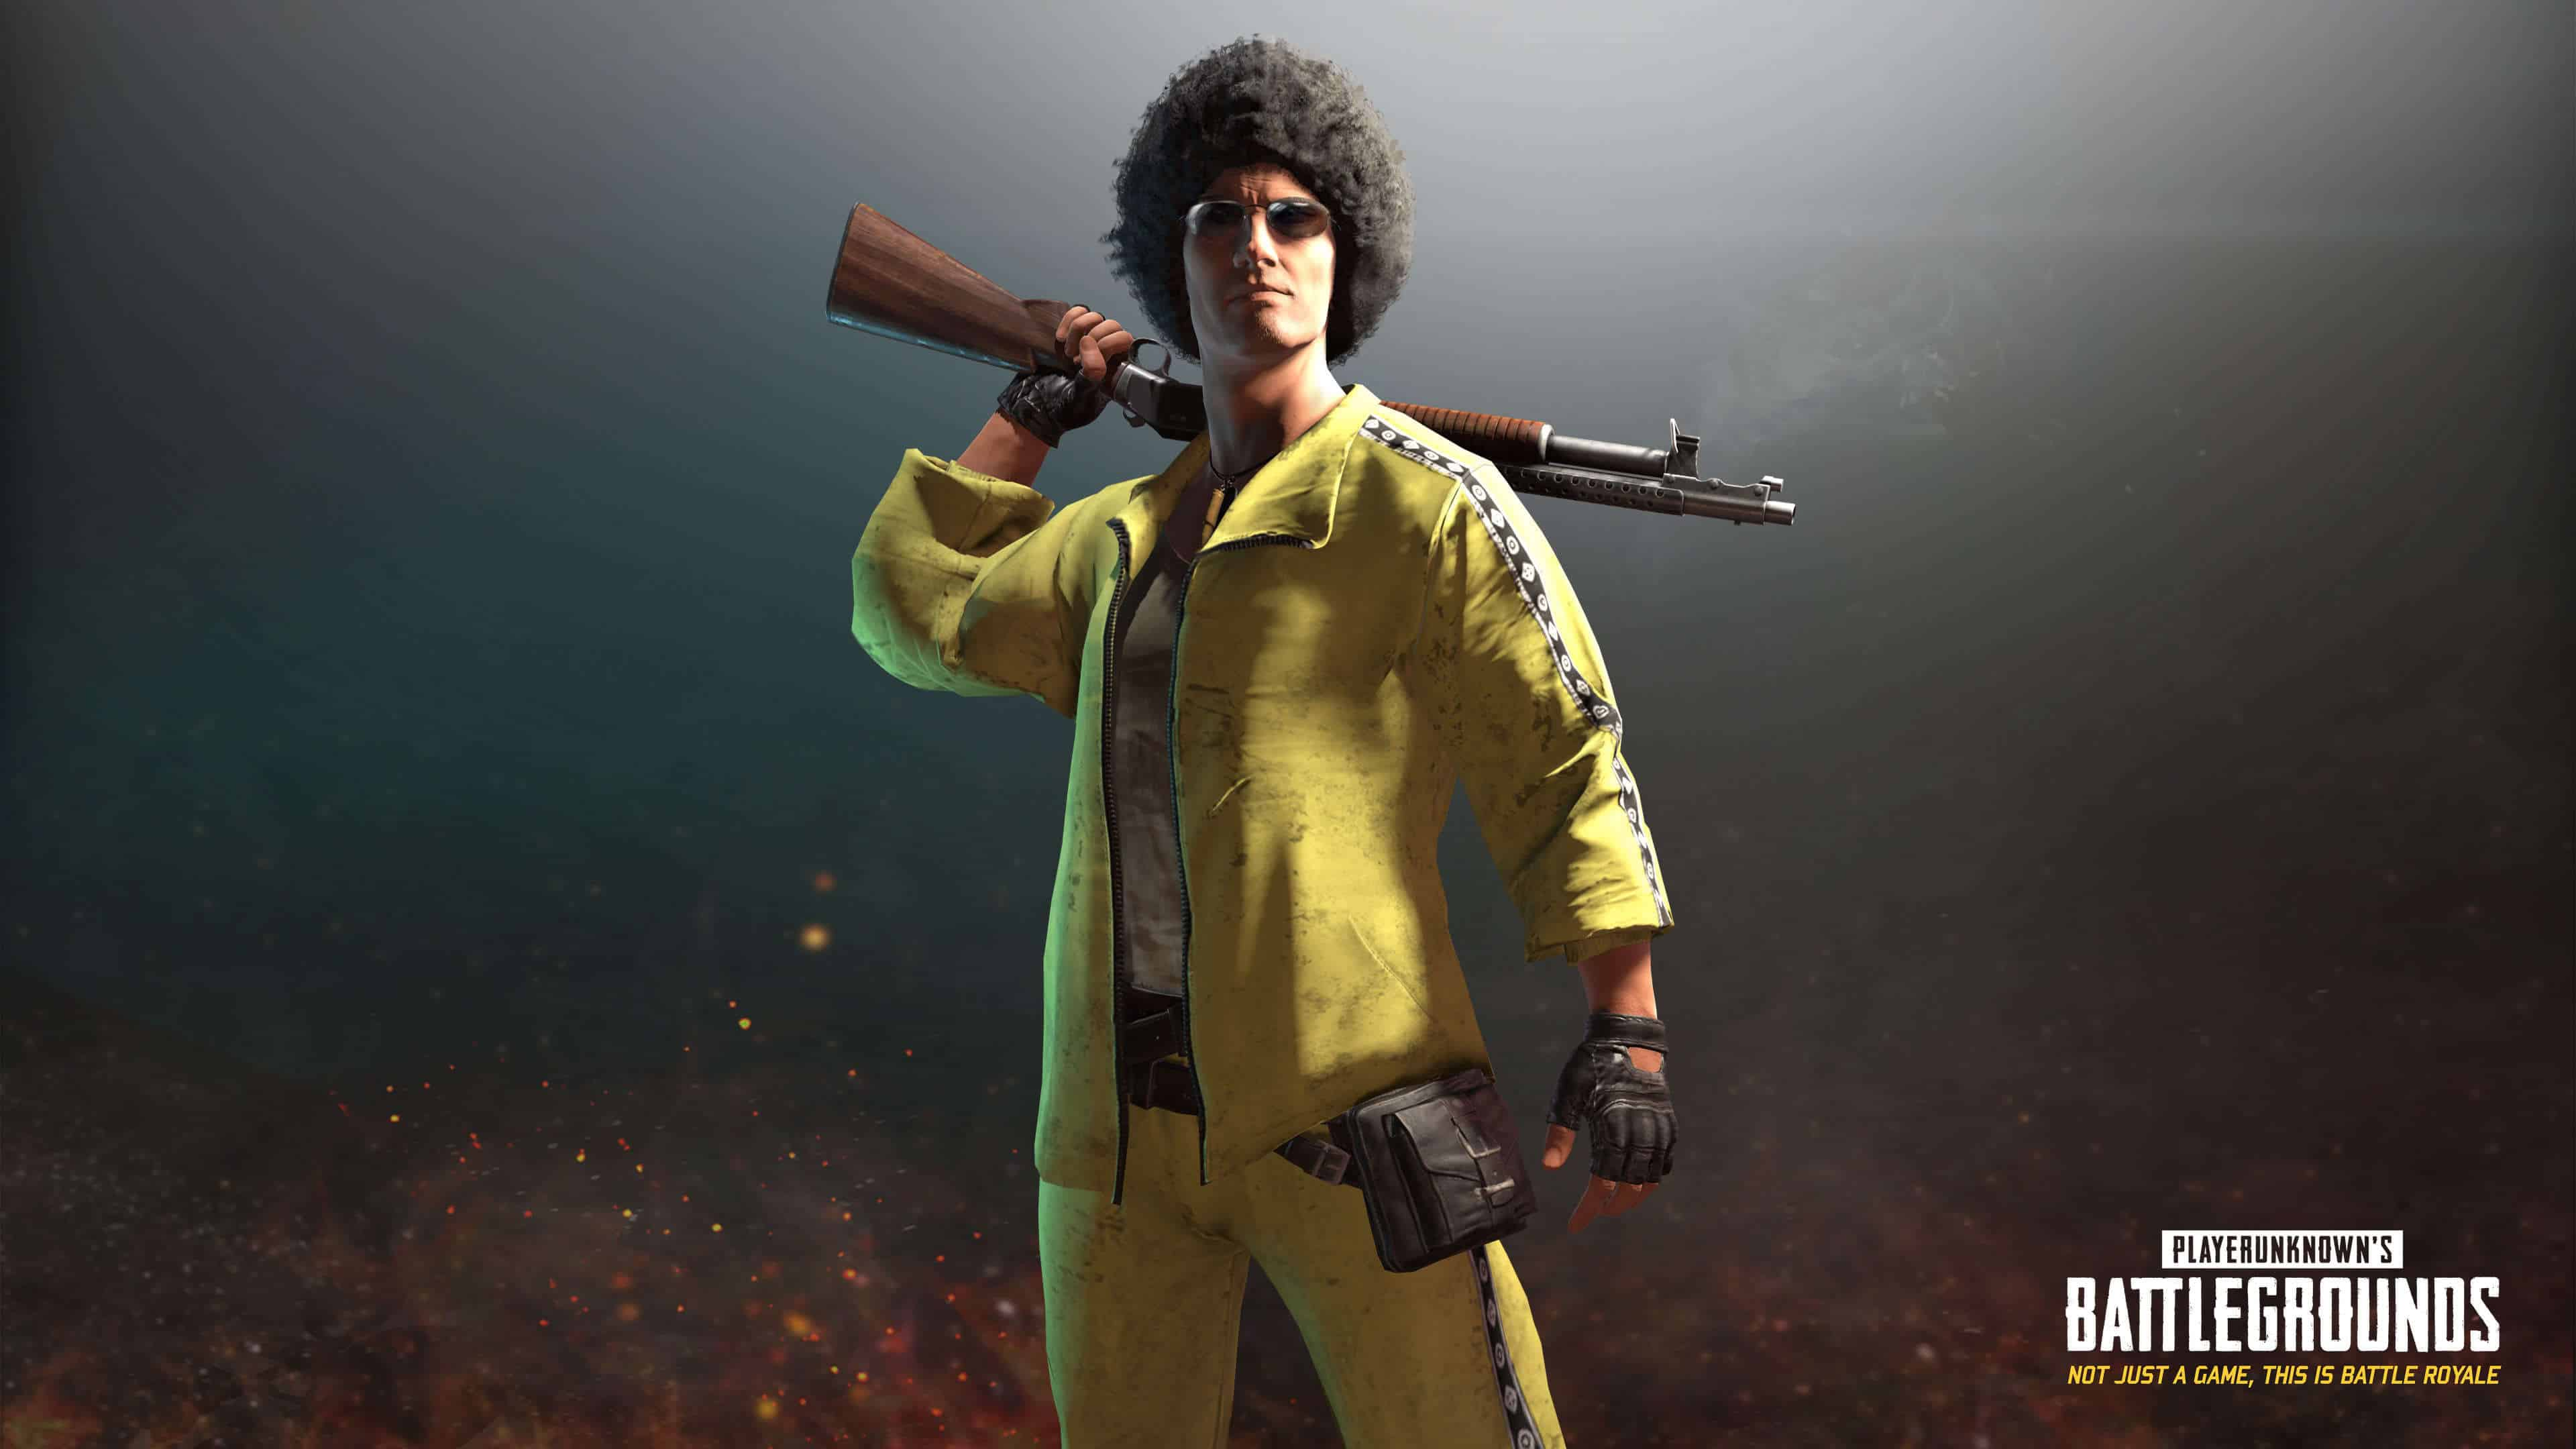 Pubg Wallpaper Dual Monitor: PUBG Player Unknown Battlegrounds Yellow Tracksuit Set UHD